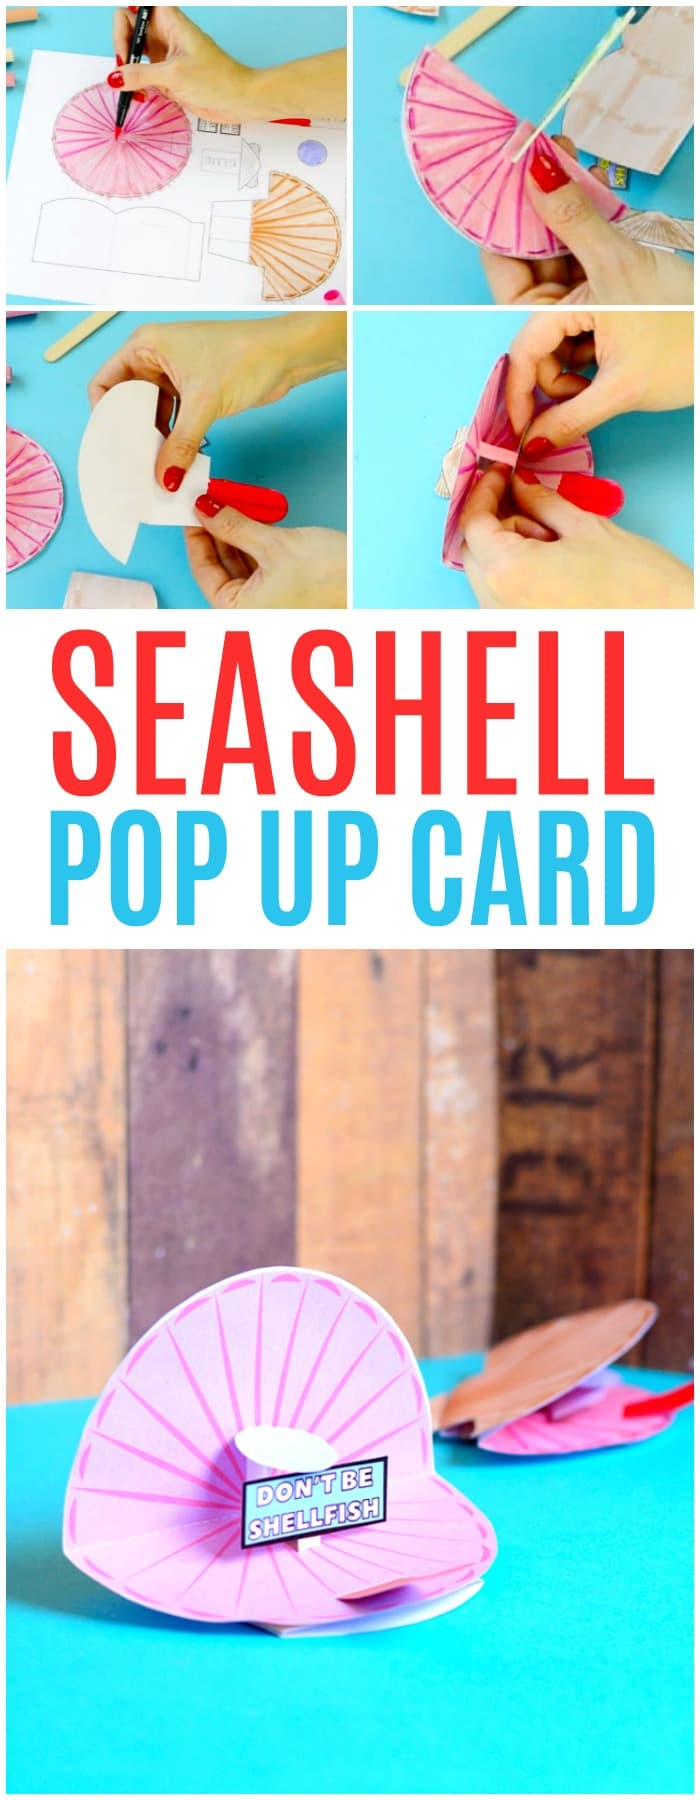 Seashell Pop Up Paper Craft for Kids with Free Printable Template Included